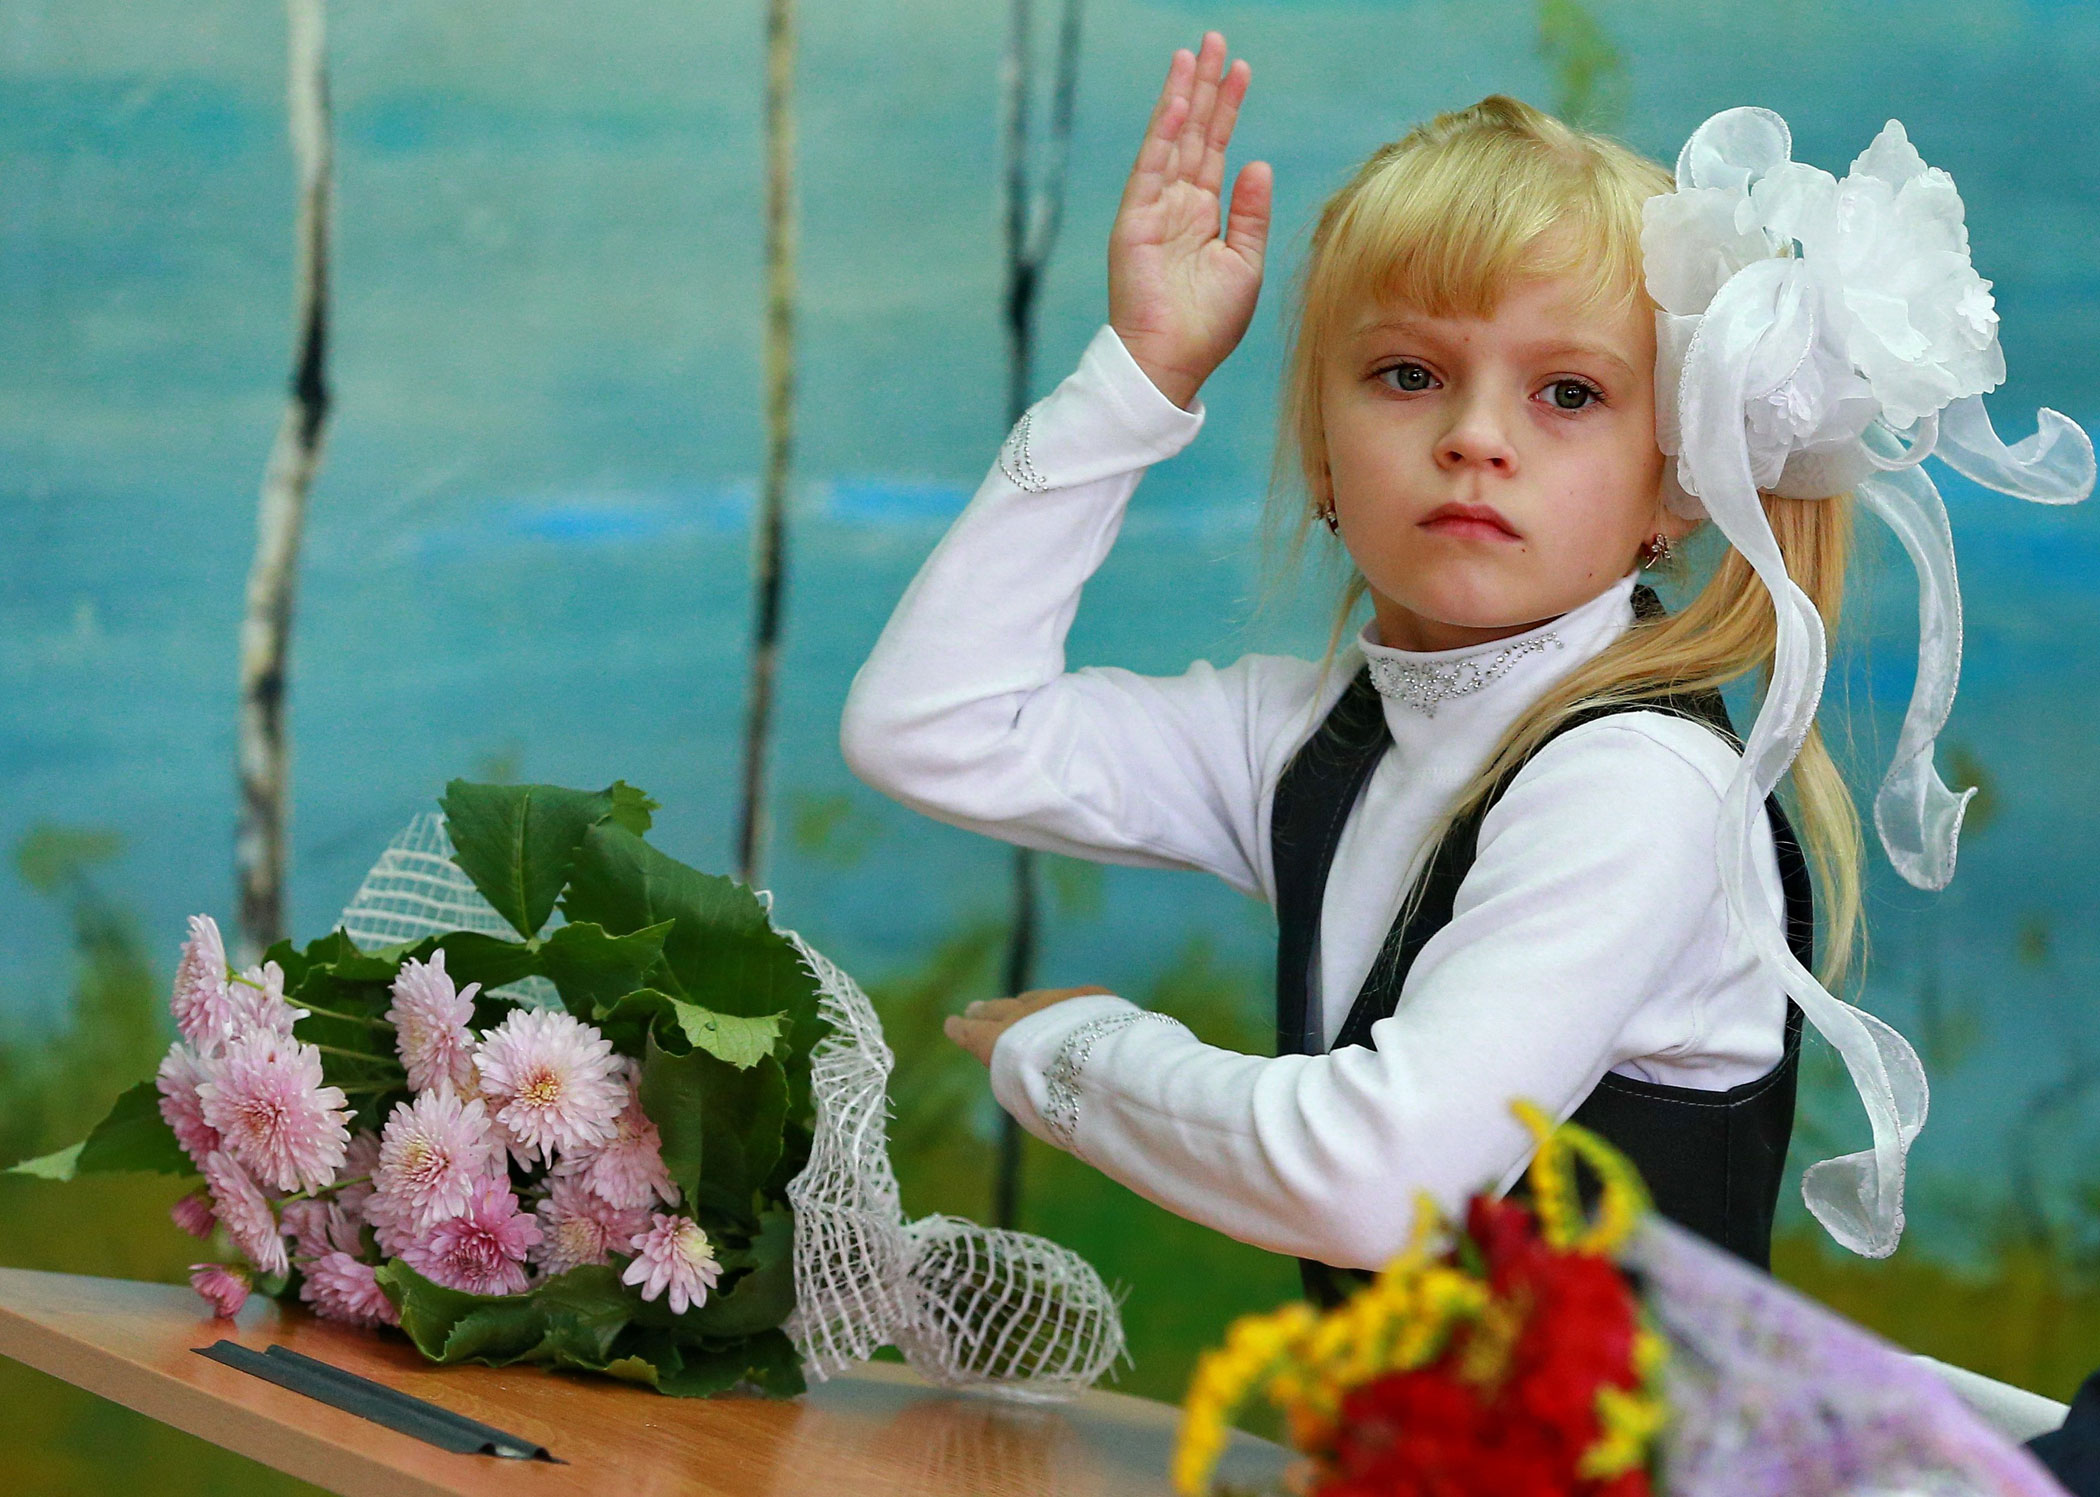 First grade students during a class in one of the local schools at the start of a new school year on Knowledge Day in Ivanovo, Russia on Sept 1, 2014